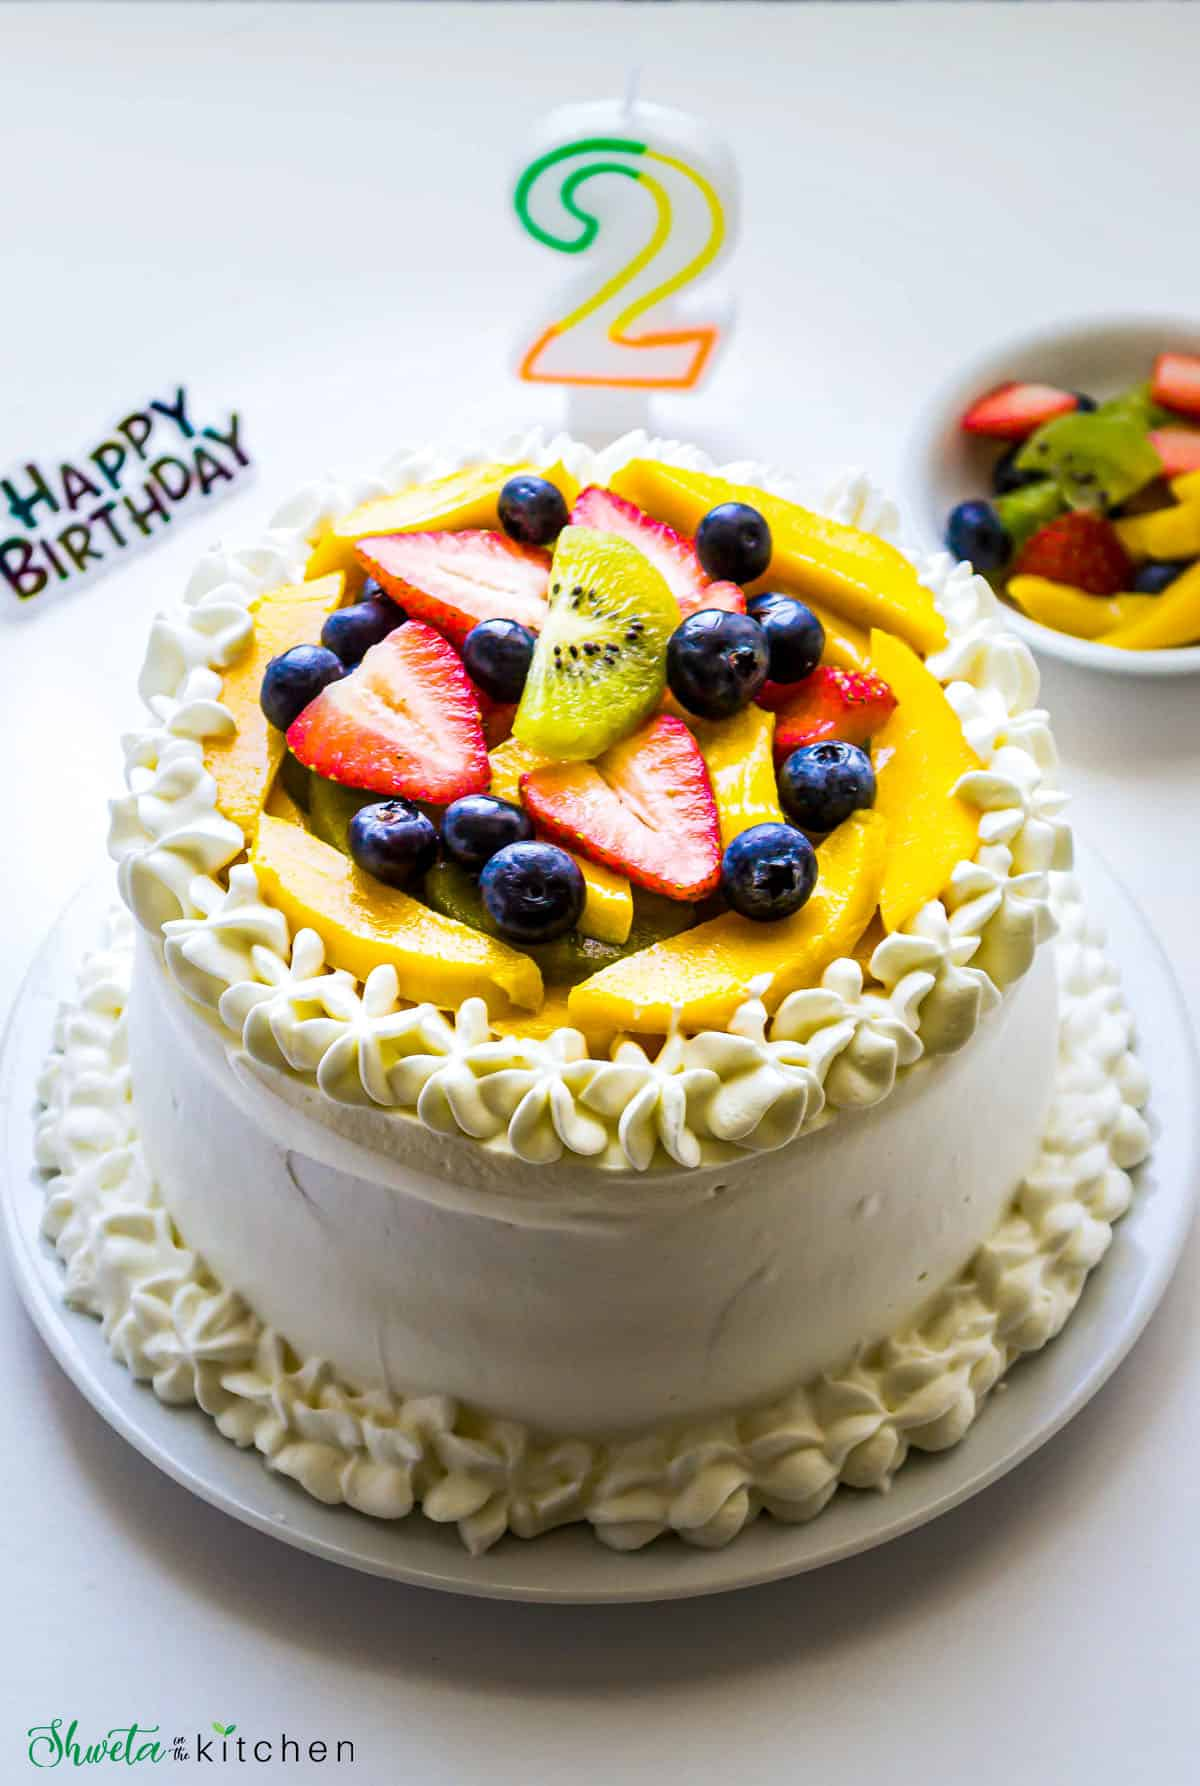 Layered  Vanilla Cream Sponge Cake frosted with whipped crea and decorated with fruits and number 2 candle.